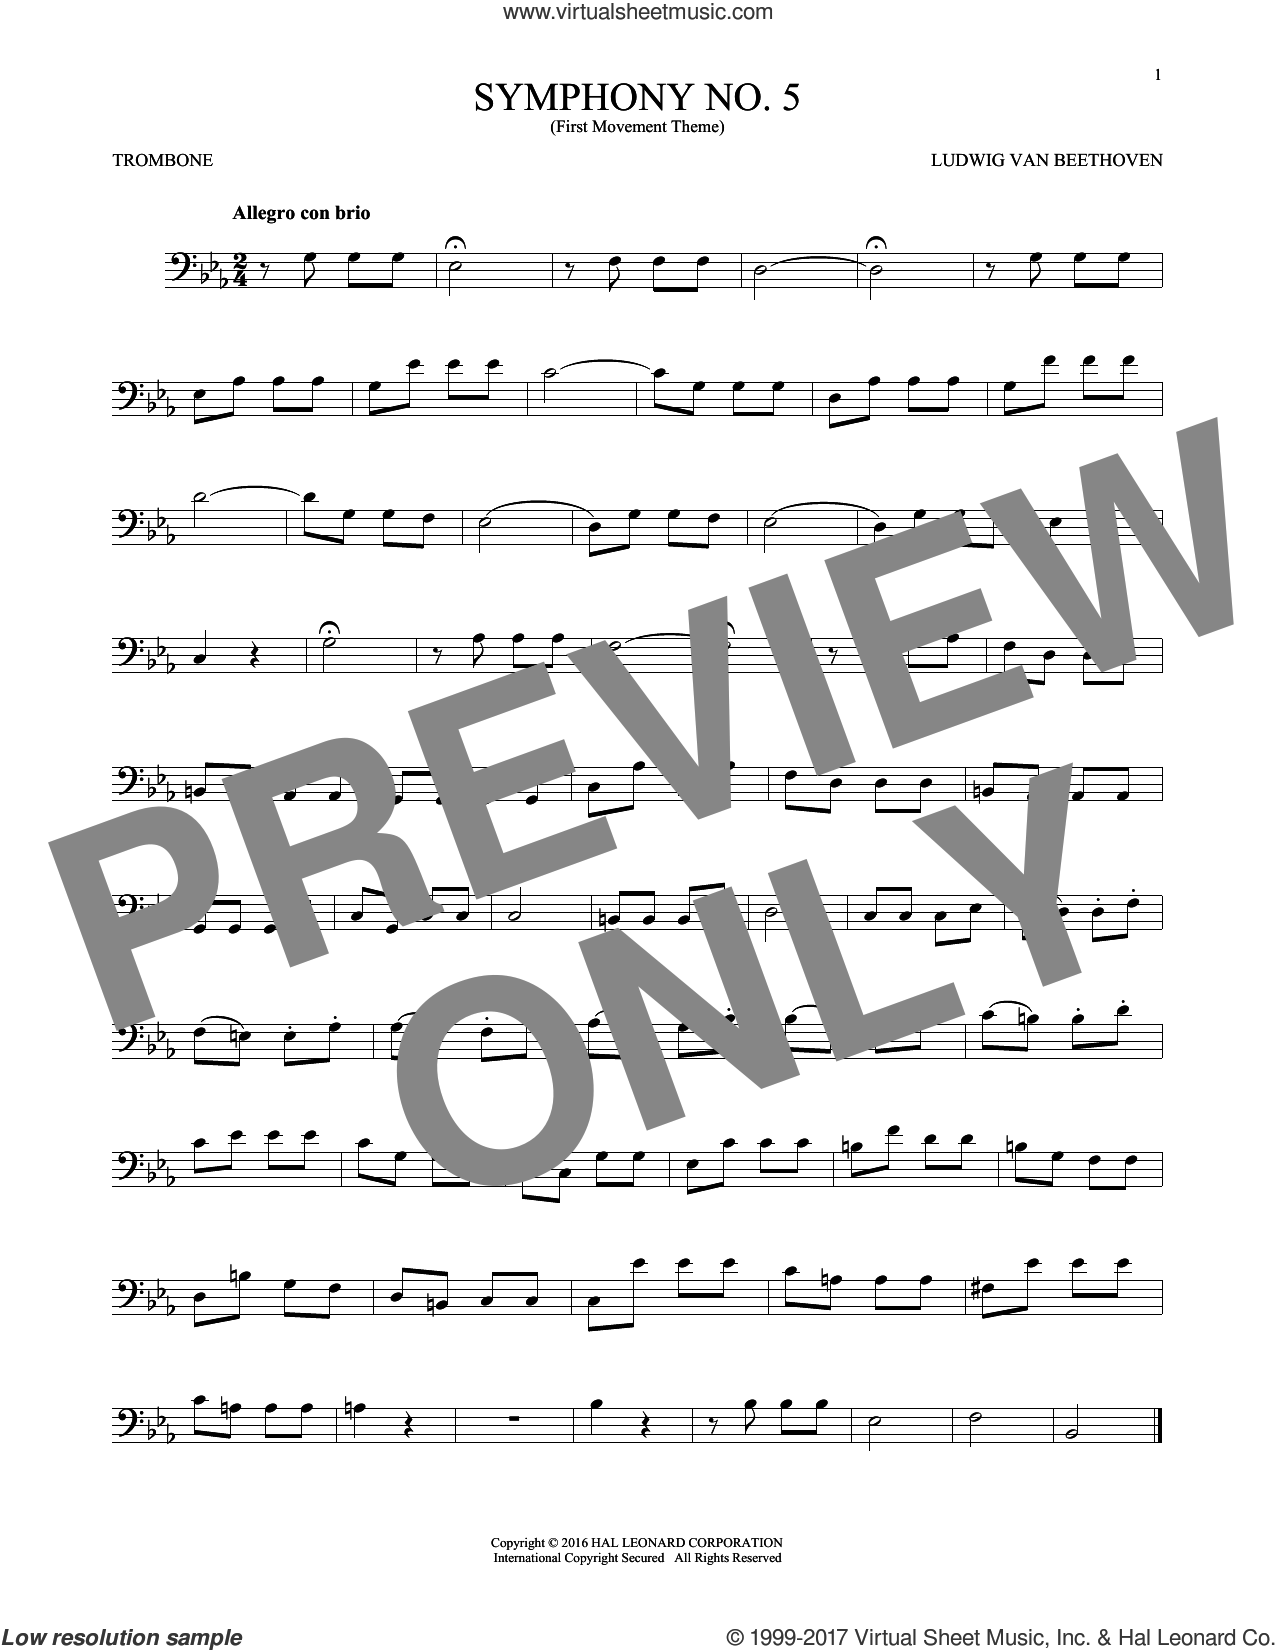 Symphony No. 5 In C Minor, First Movement Excerpt sheet music for trombone solo by Ludwig van Beethoven, classical score, intermediate skill level